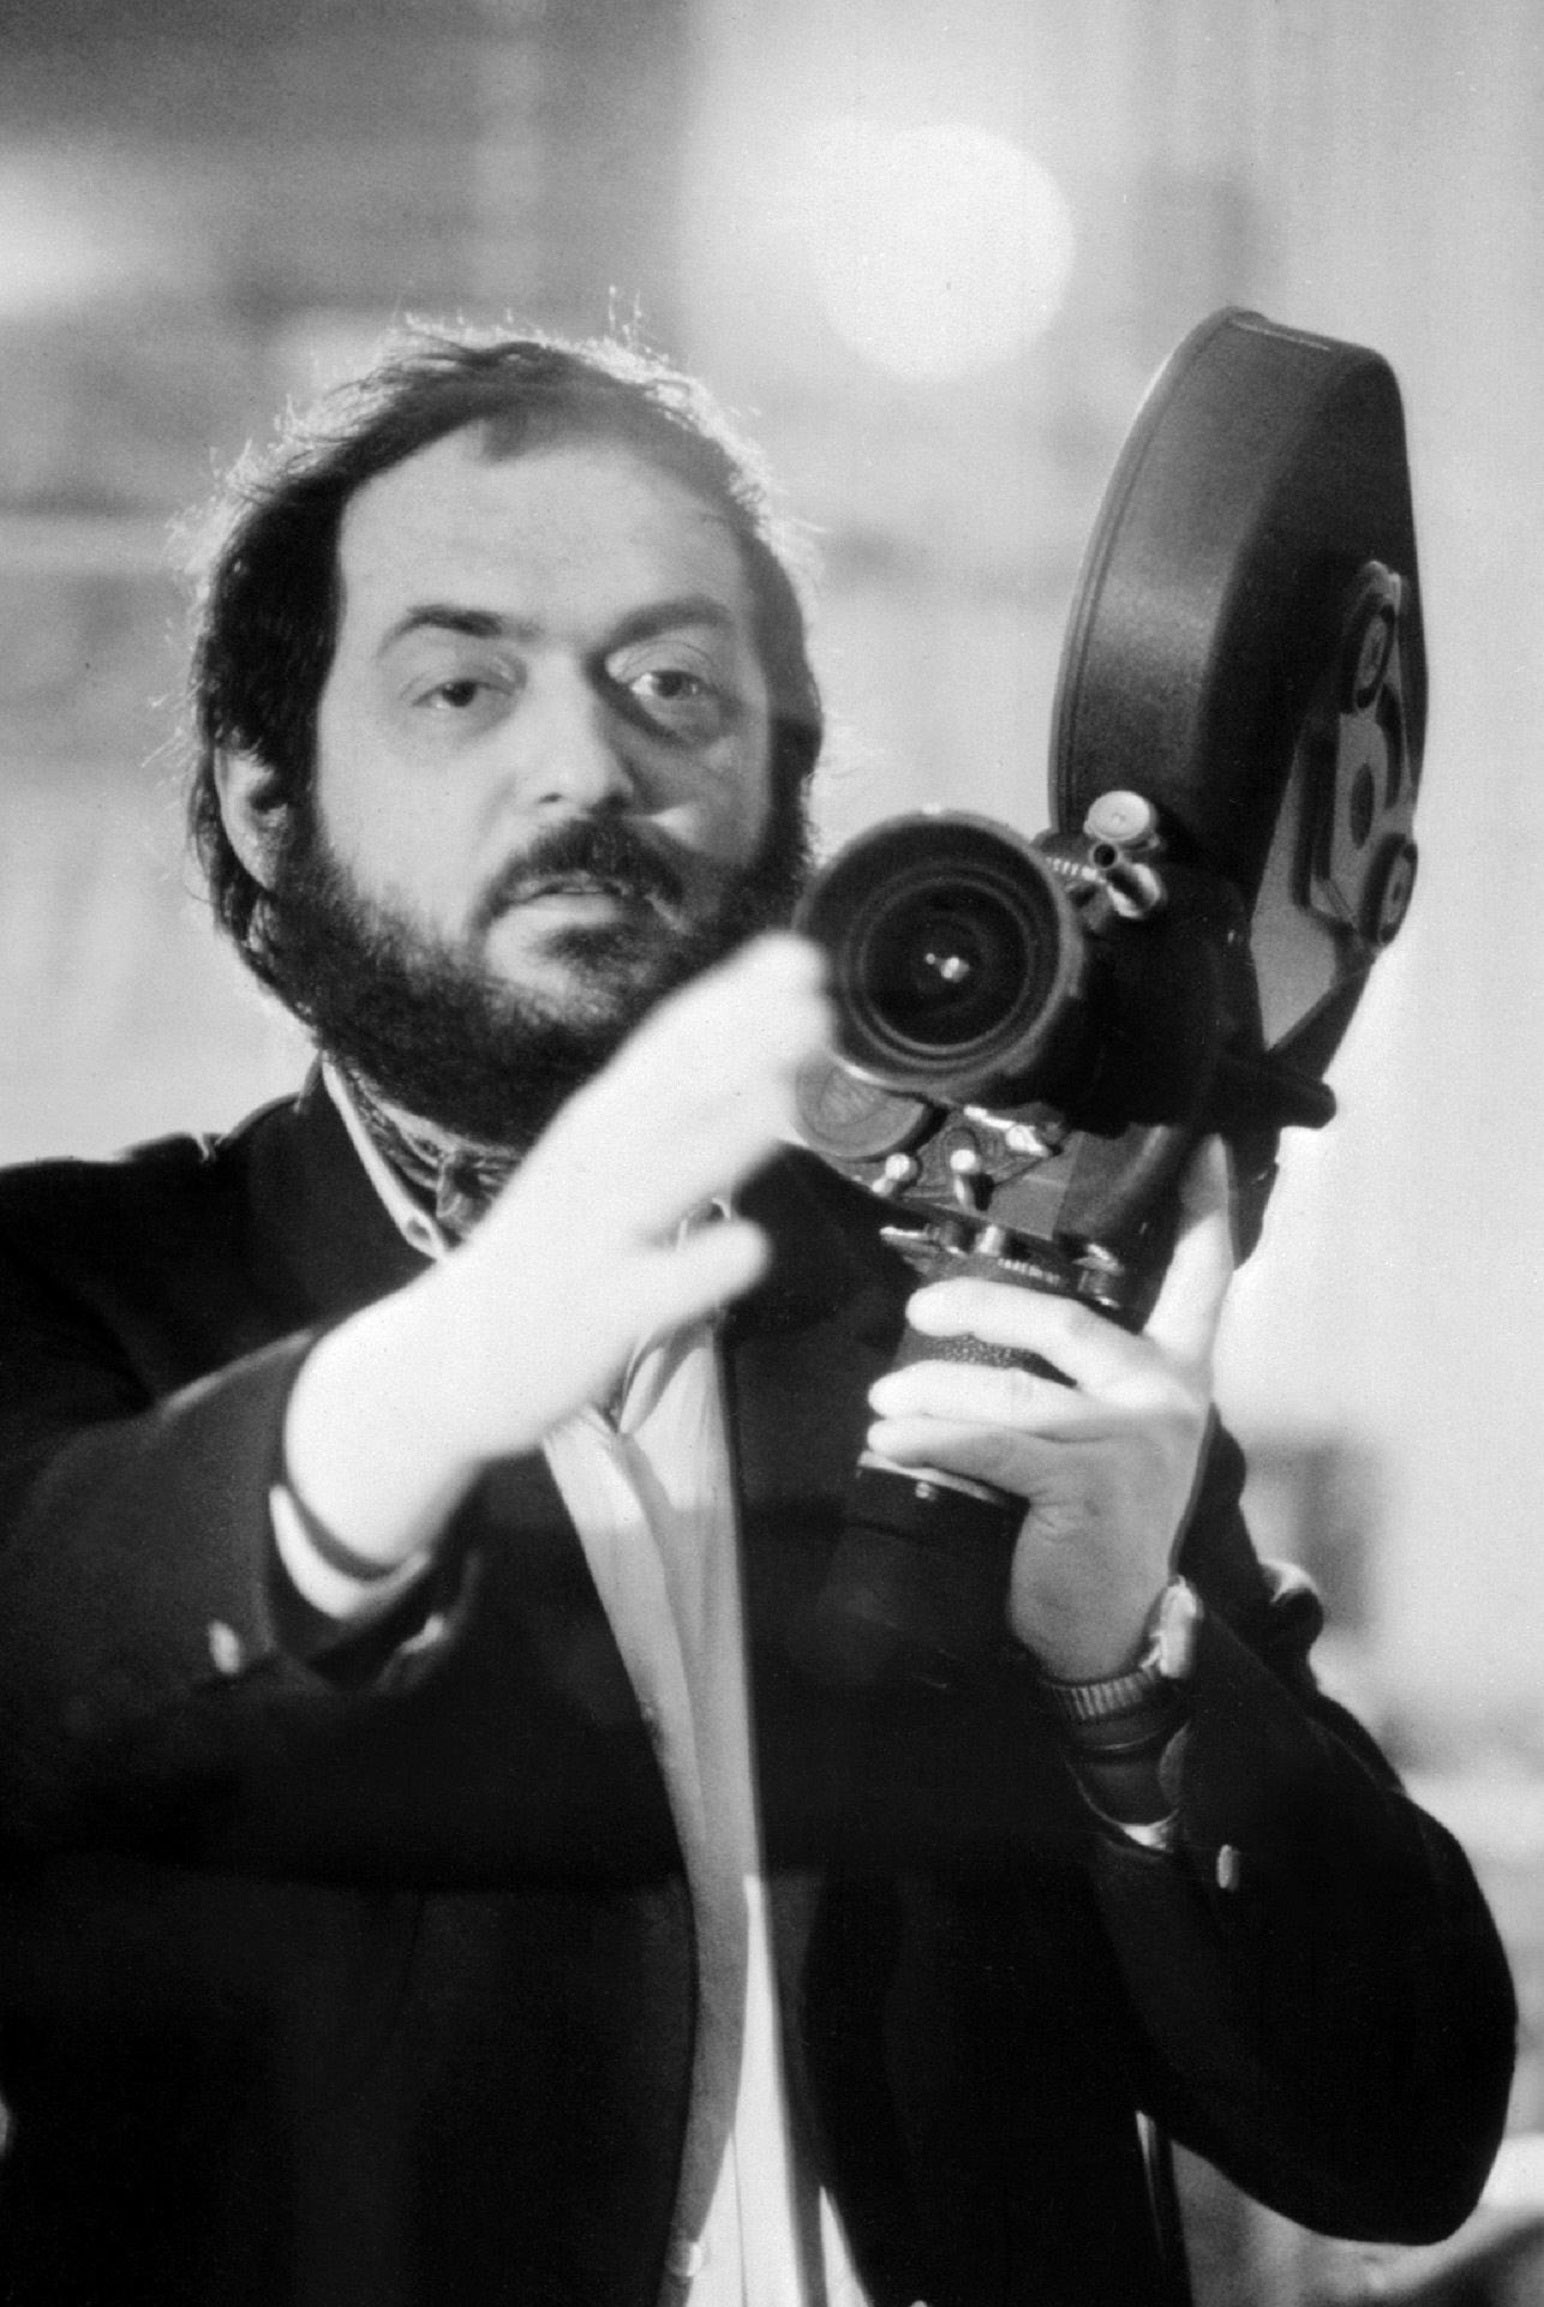 The Kubrick Test offers a first-hand account of the director's working methods